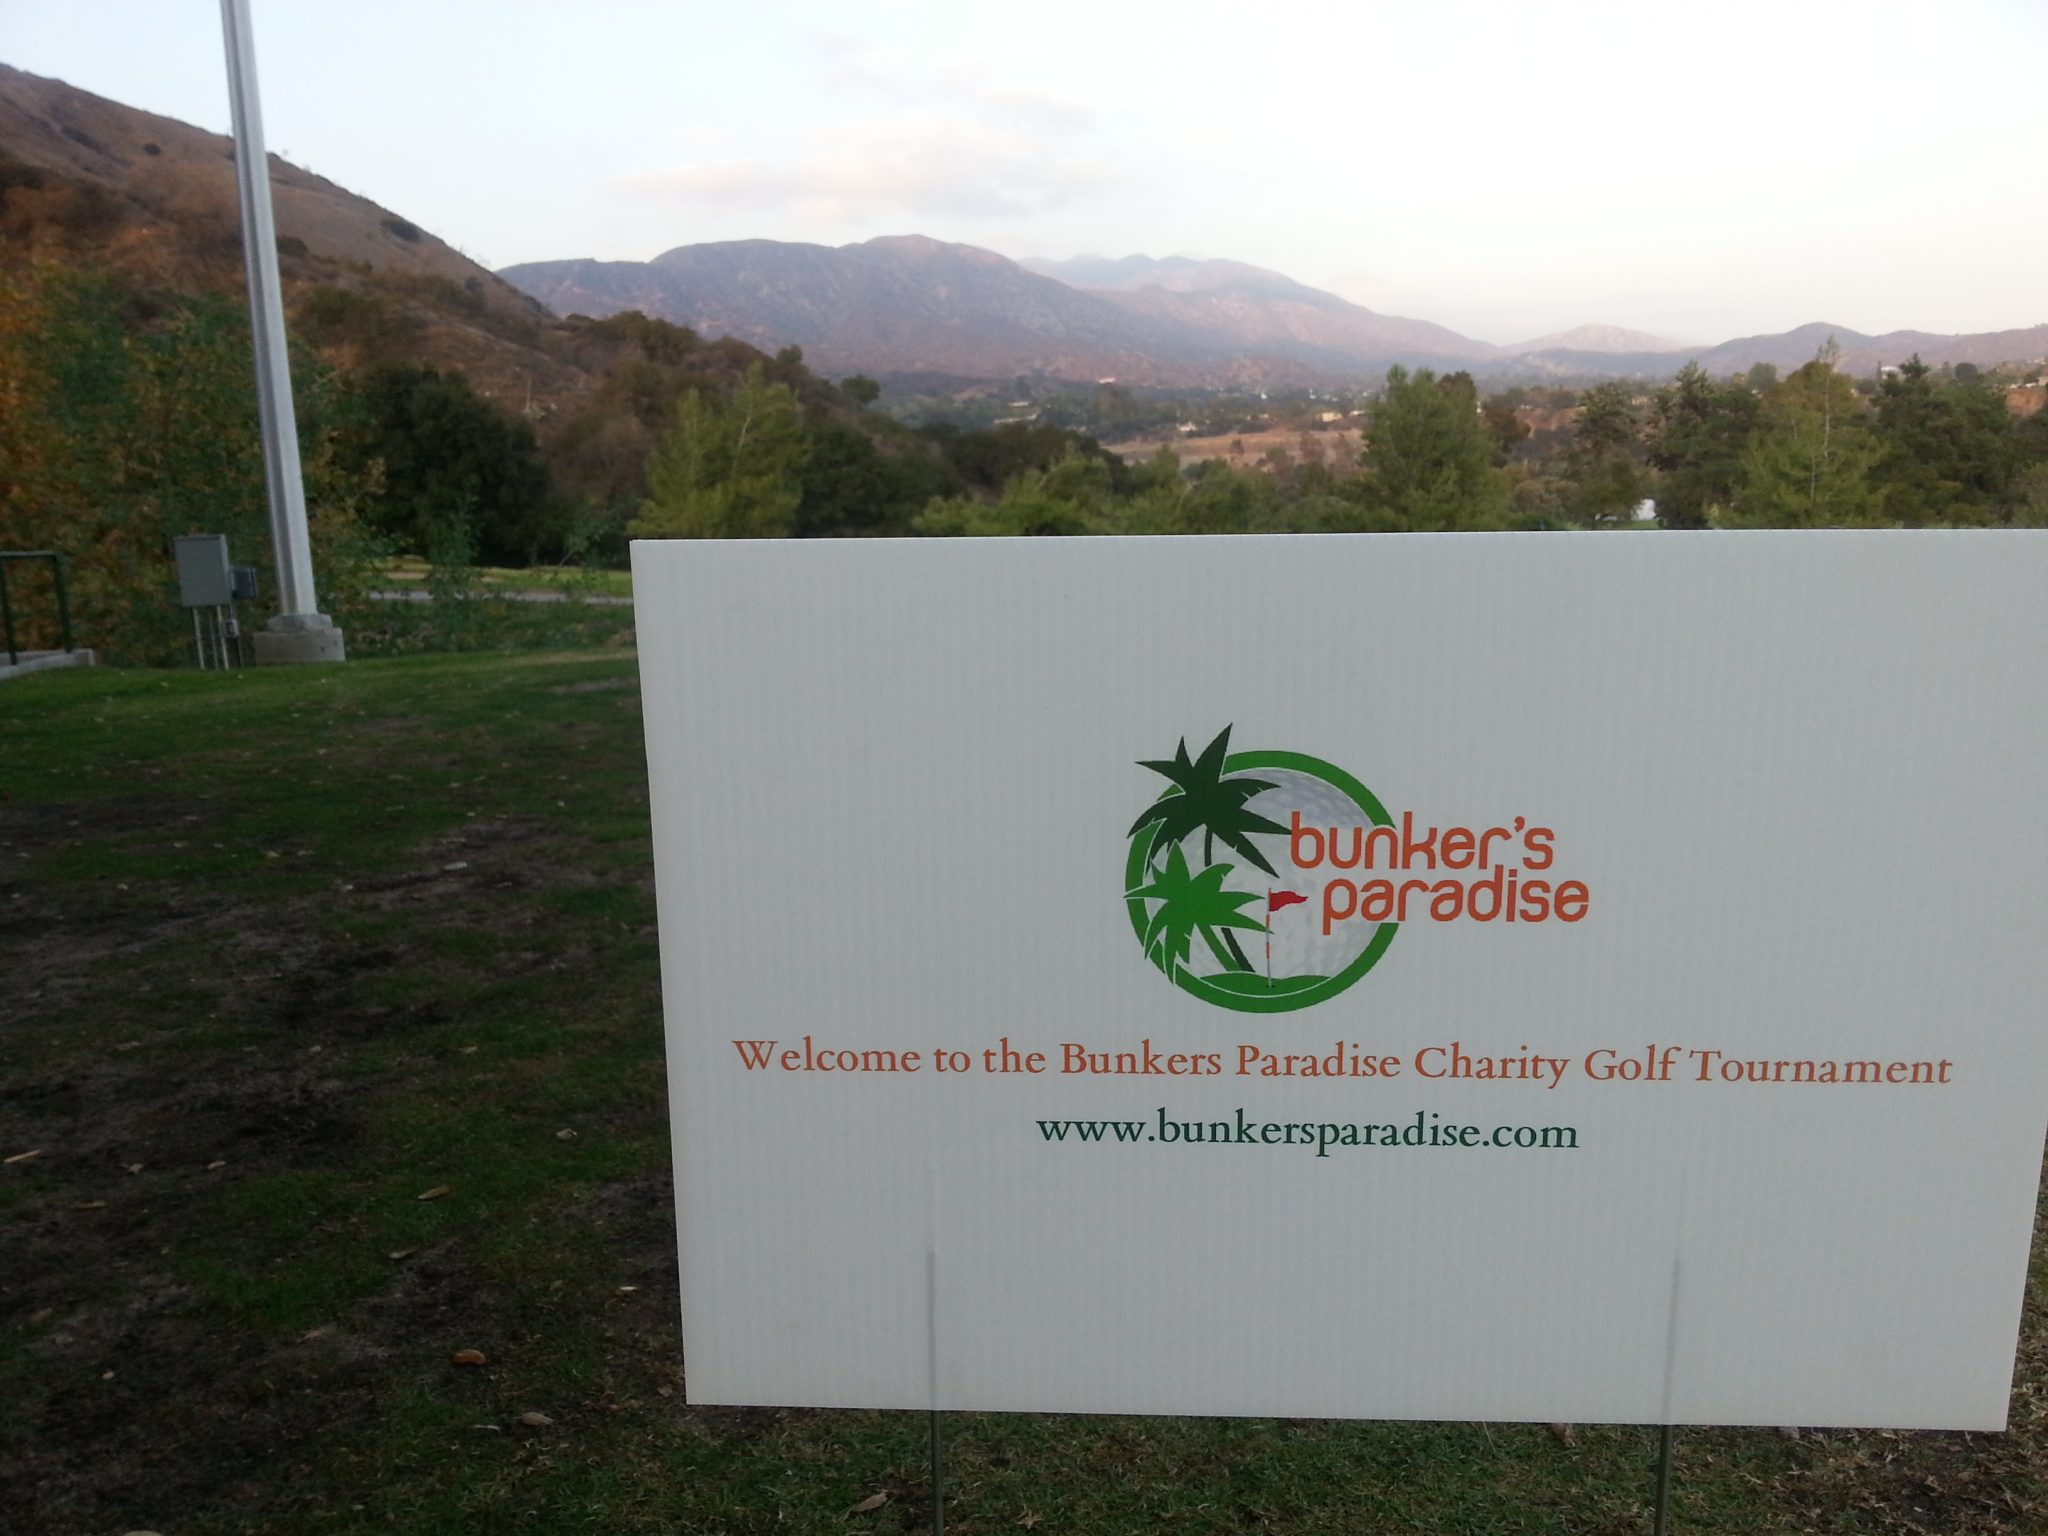 Bunkers Paradise Charity Golf Tournament